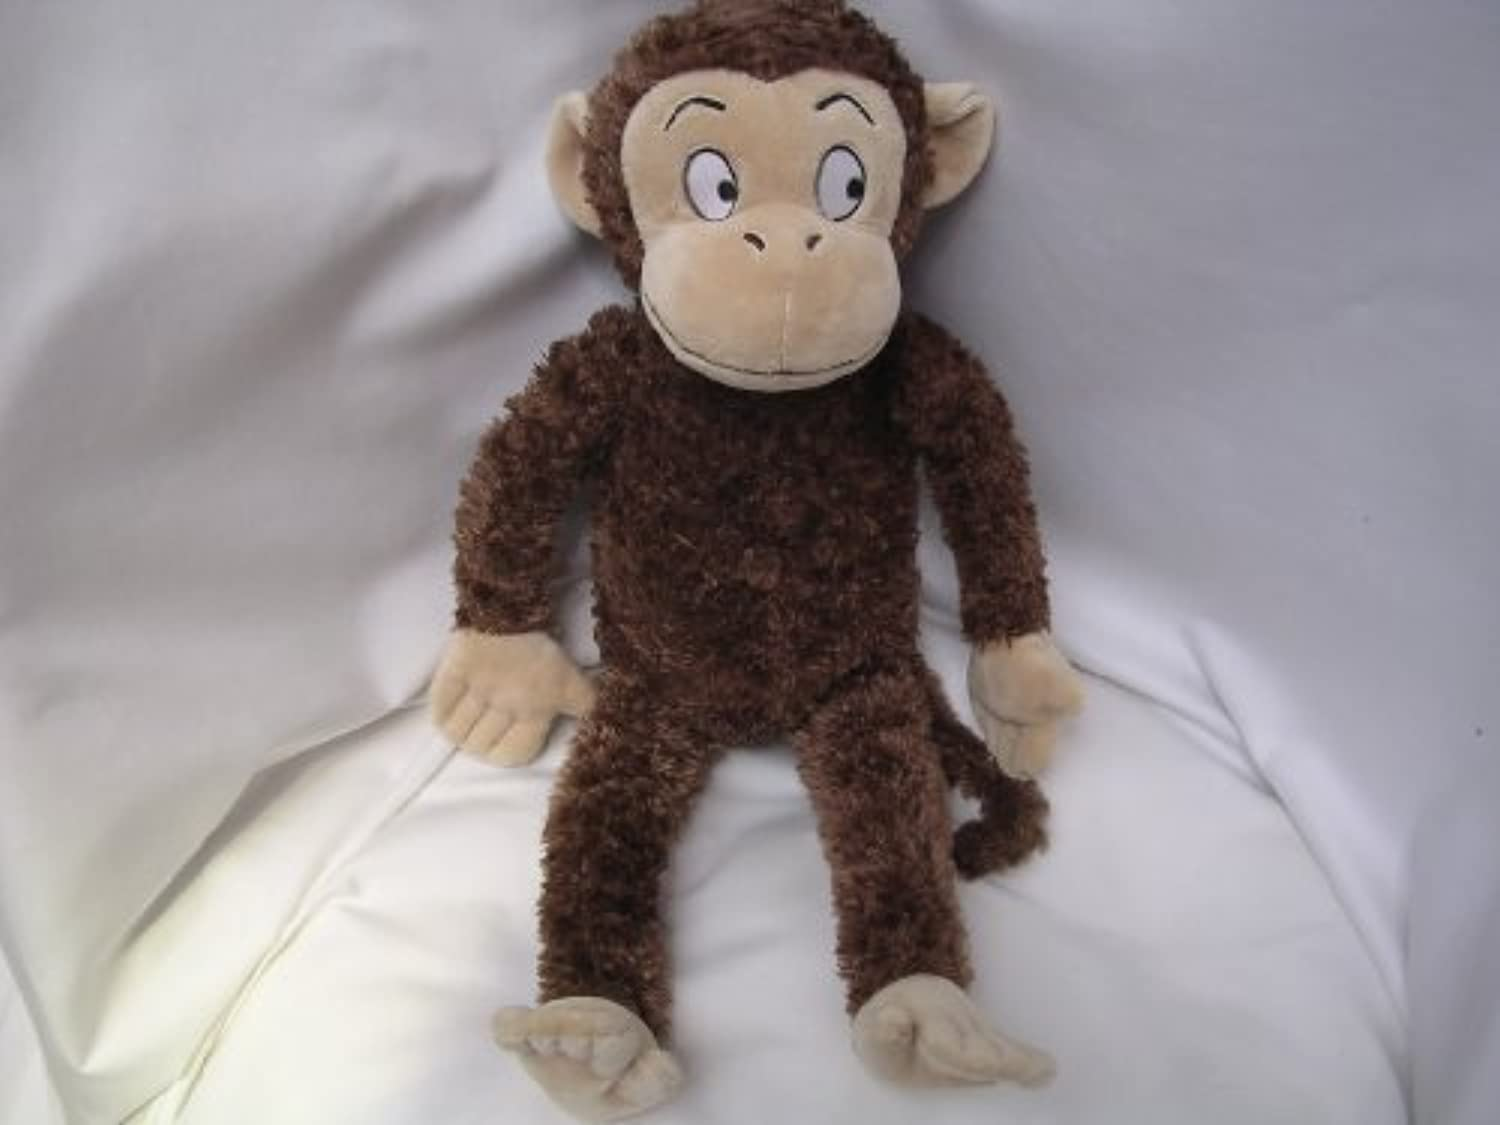 Monkey Plush Toy 15 from Giraffes Can't Dance Guy Parker Rees by Kohls Cares for Kids